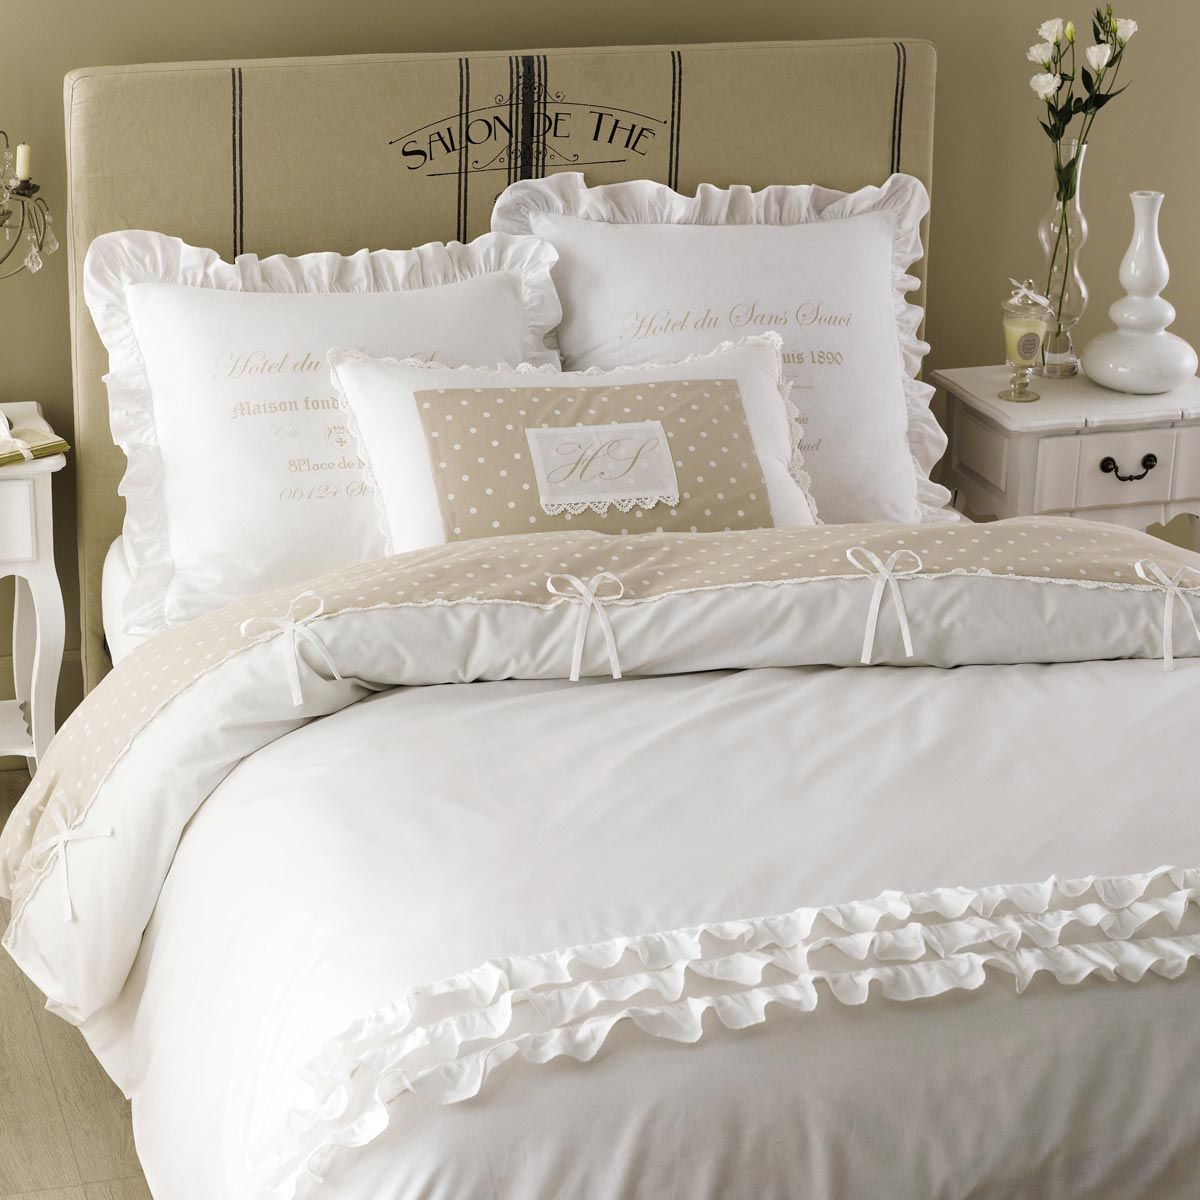 parure de lit en coton blanche 220x240 home parure de. Black Bedroom Furniture Sets. Home Design Ideas